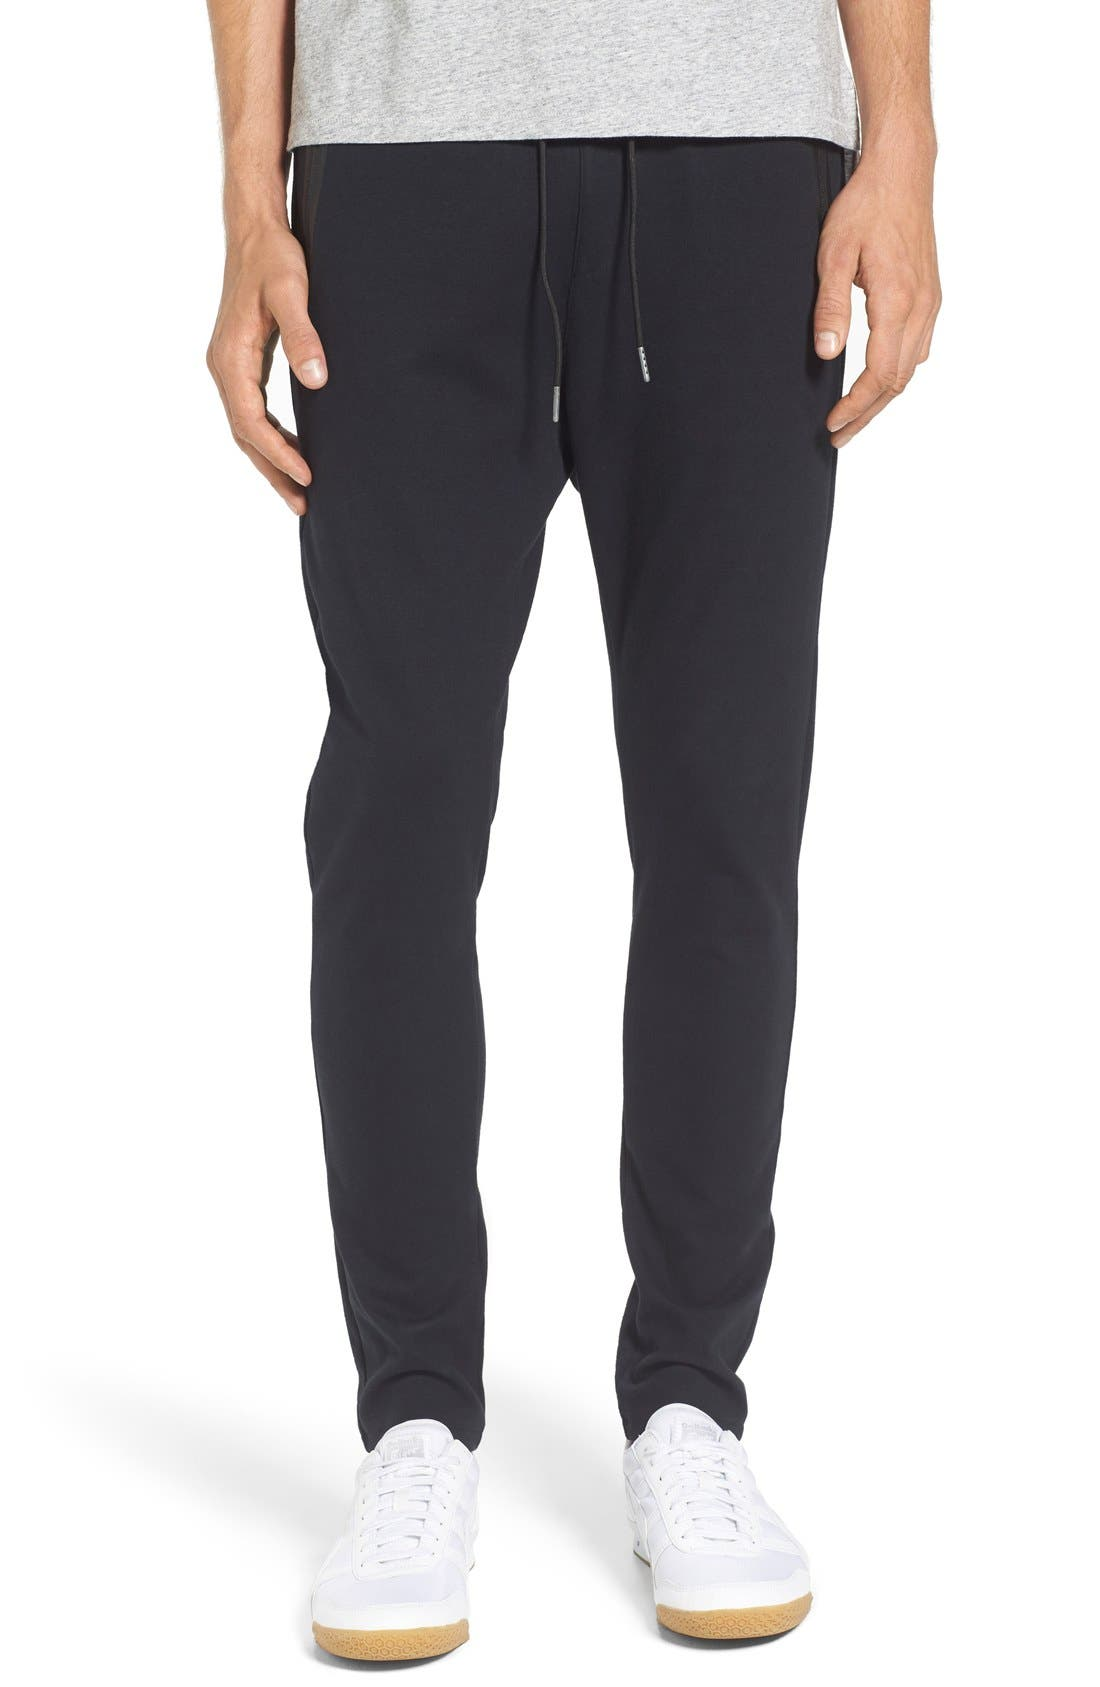 'Cling Ponte' Jogger Pants,                         Main,                         color, Black